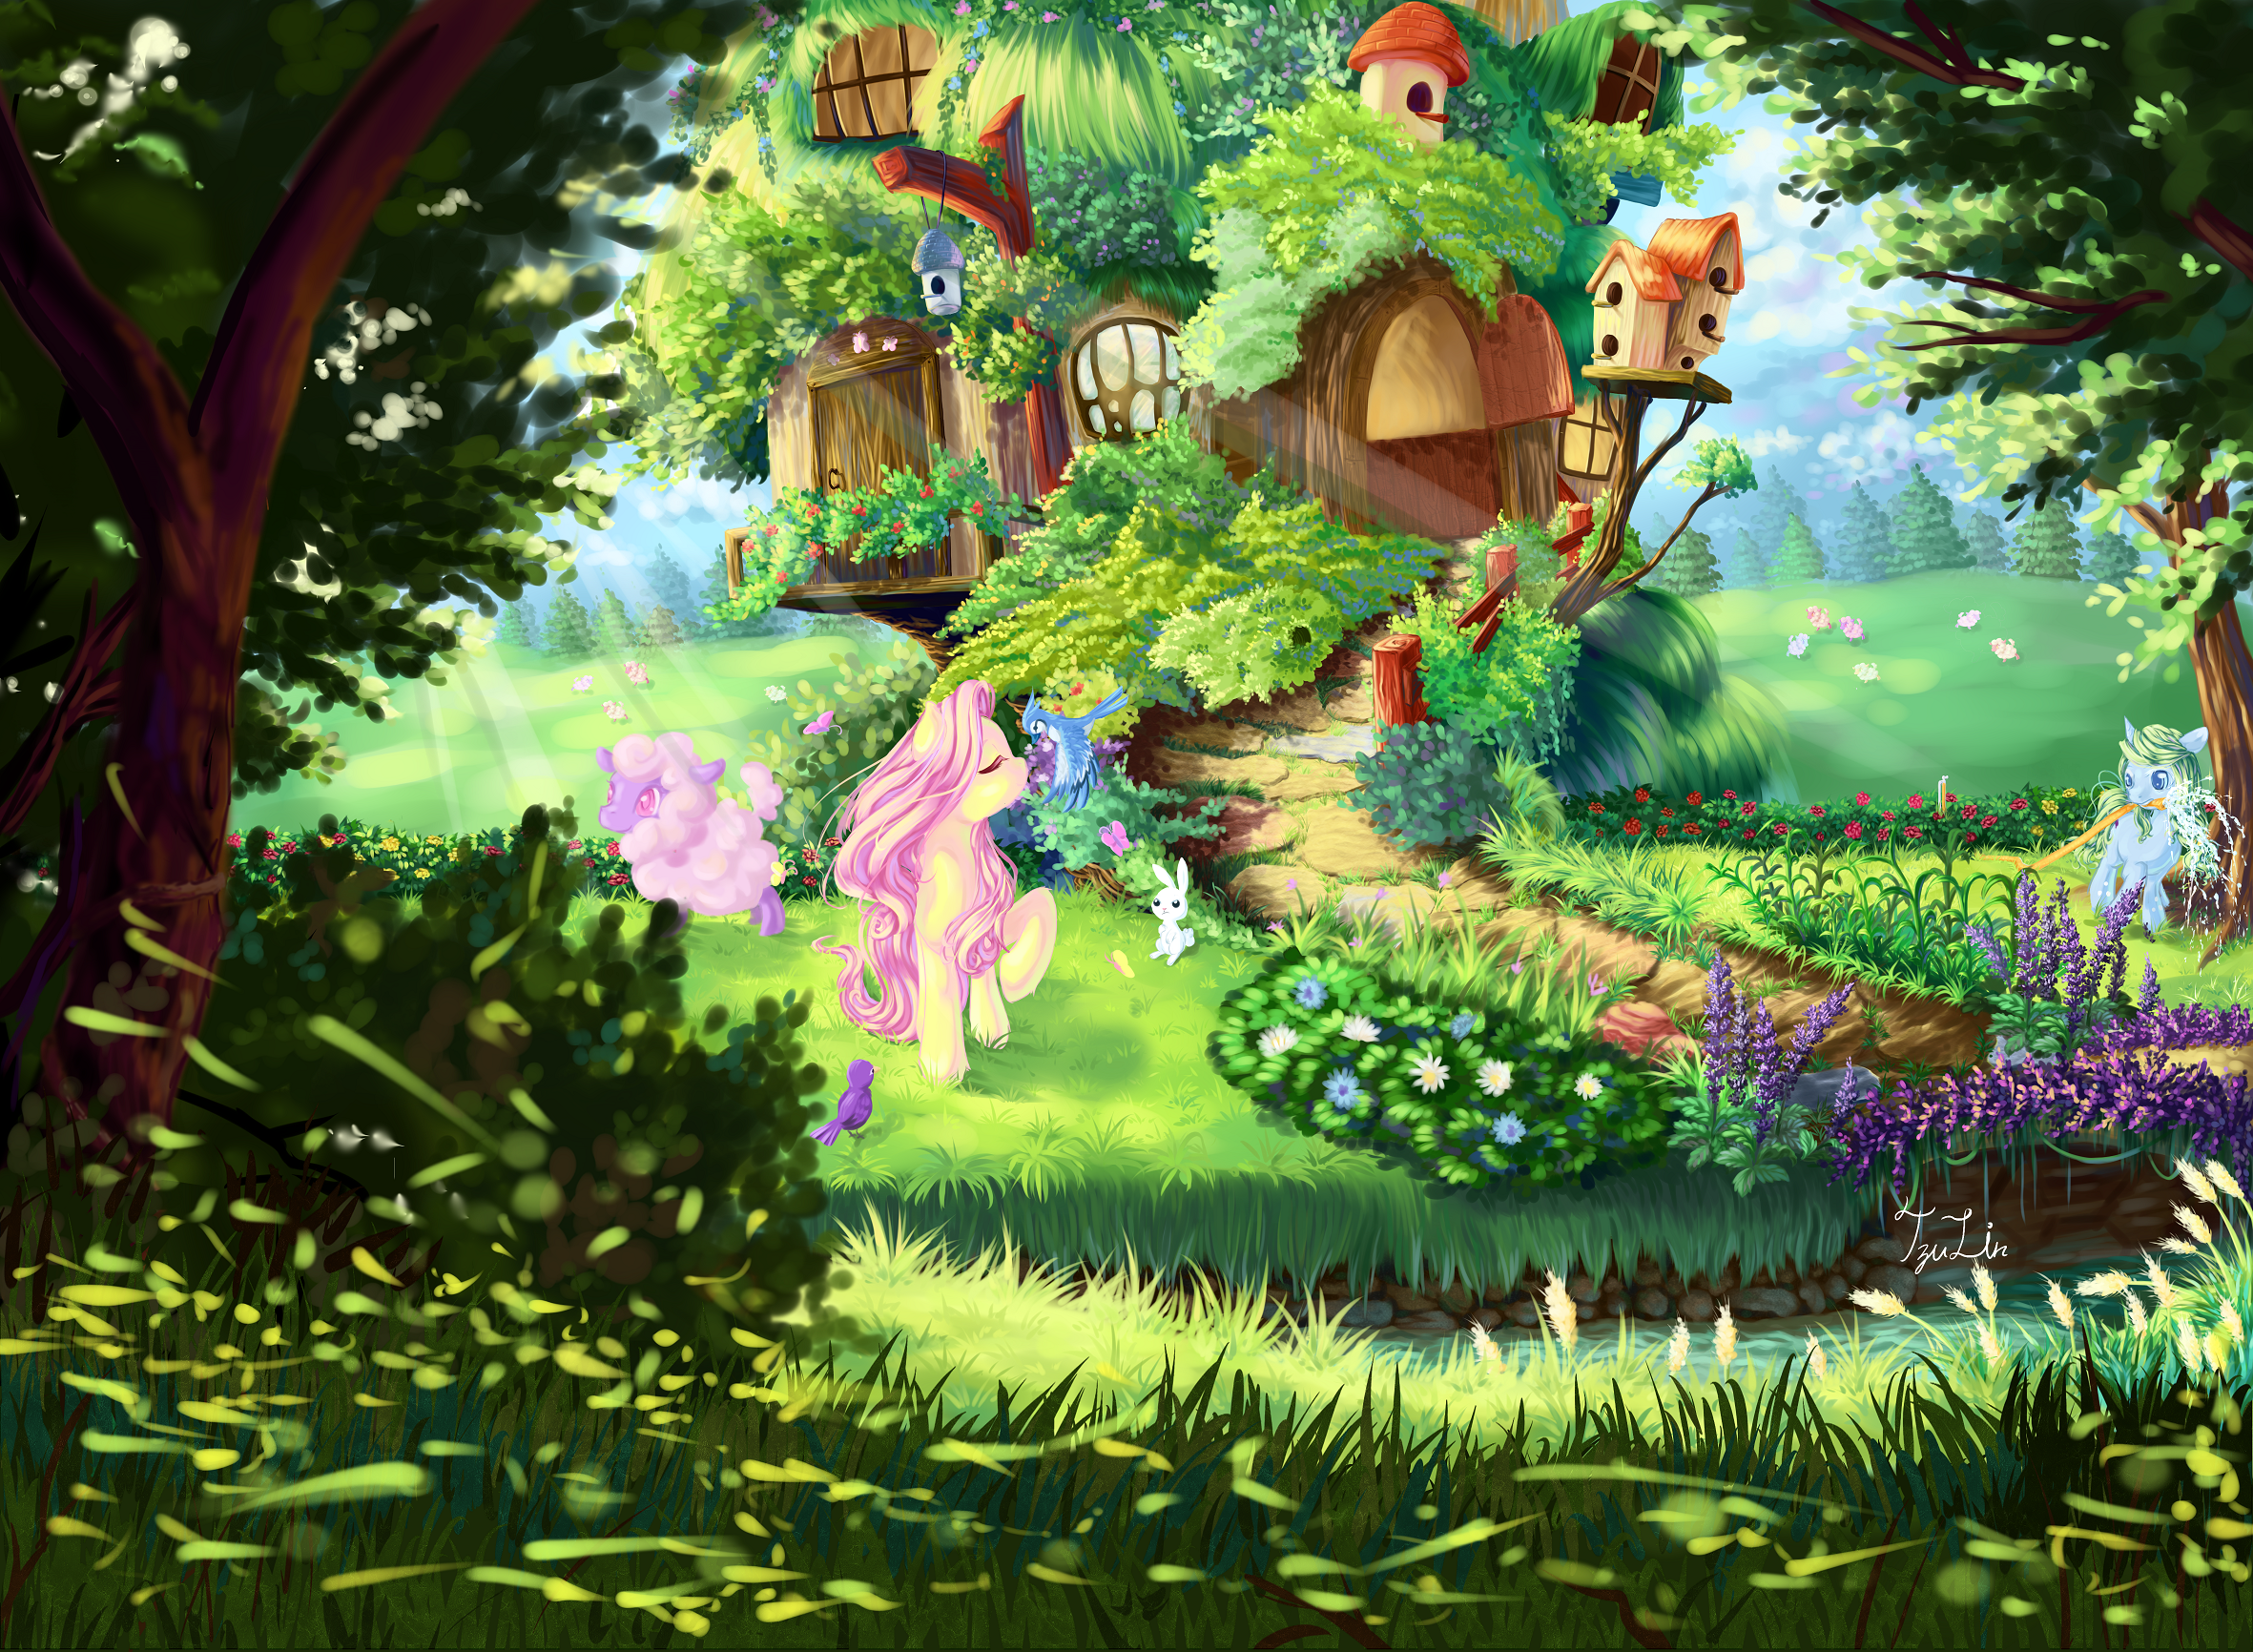 e621 amazing_background ambiguous_gender blue_eyes blue_fur bridge creek detailed_background equine eyes_closed female feral flower fluttershy_(mlp) friendship_is_magic fur garden green_hair hair horse house mammal my_little_pony nature outside pegasus pink_hair plant pony tree_house water window wings yellow_fur 卒凜